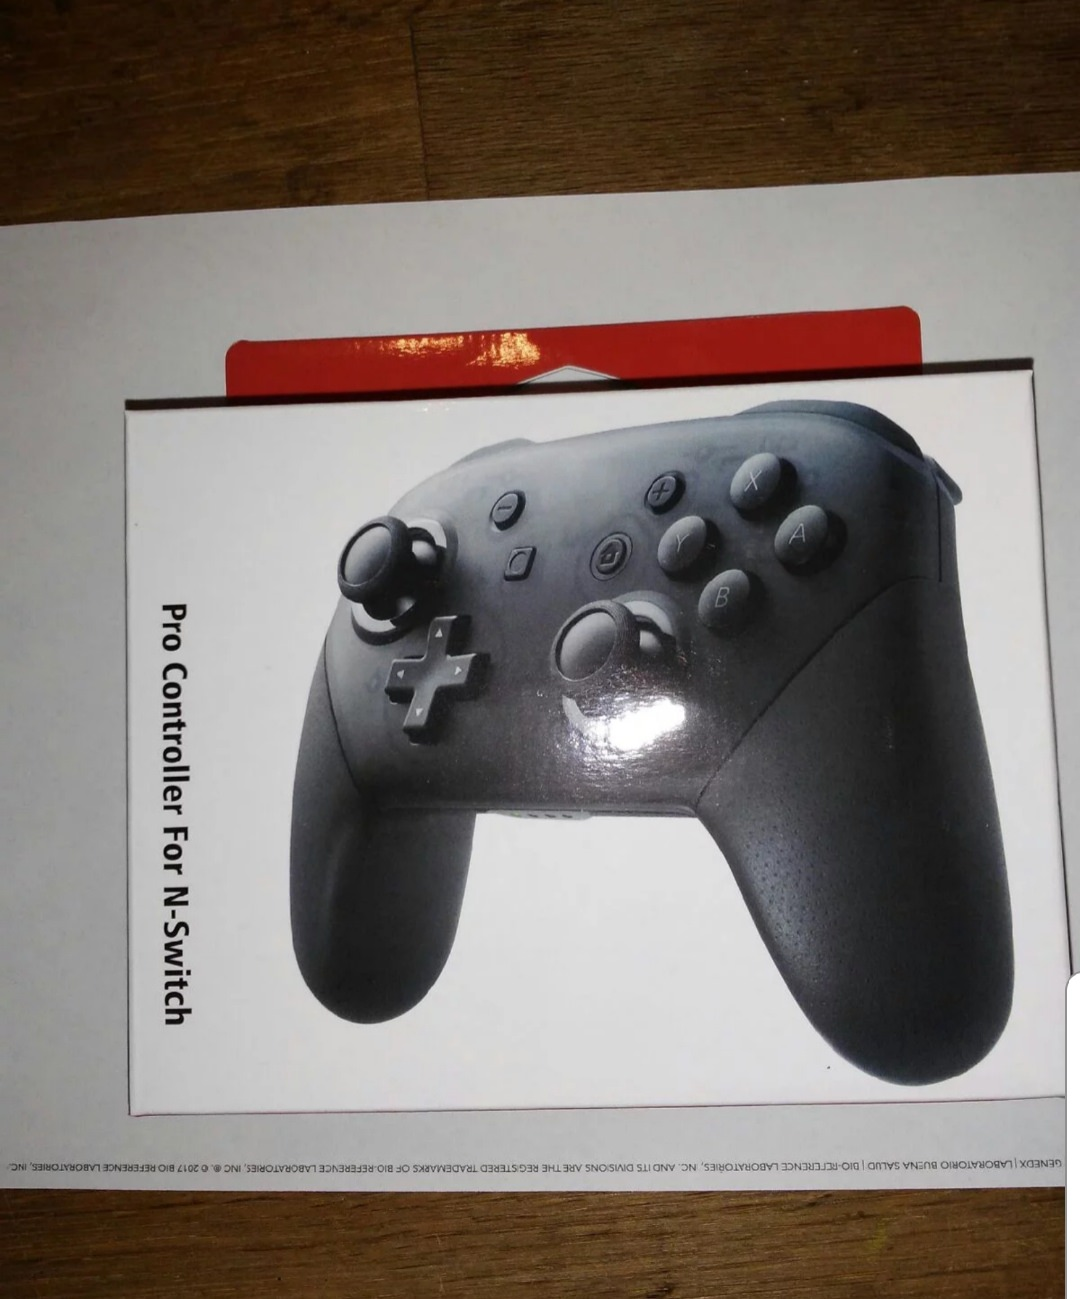 Heres How The Fake Switch Pro Controller Packaging Looks Like 5 Way Joystick As You Can Probably Tell Is Missing Official Nintendo Logo And Many Other Differences So Thats One To